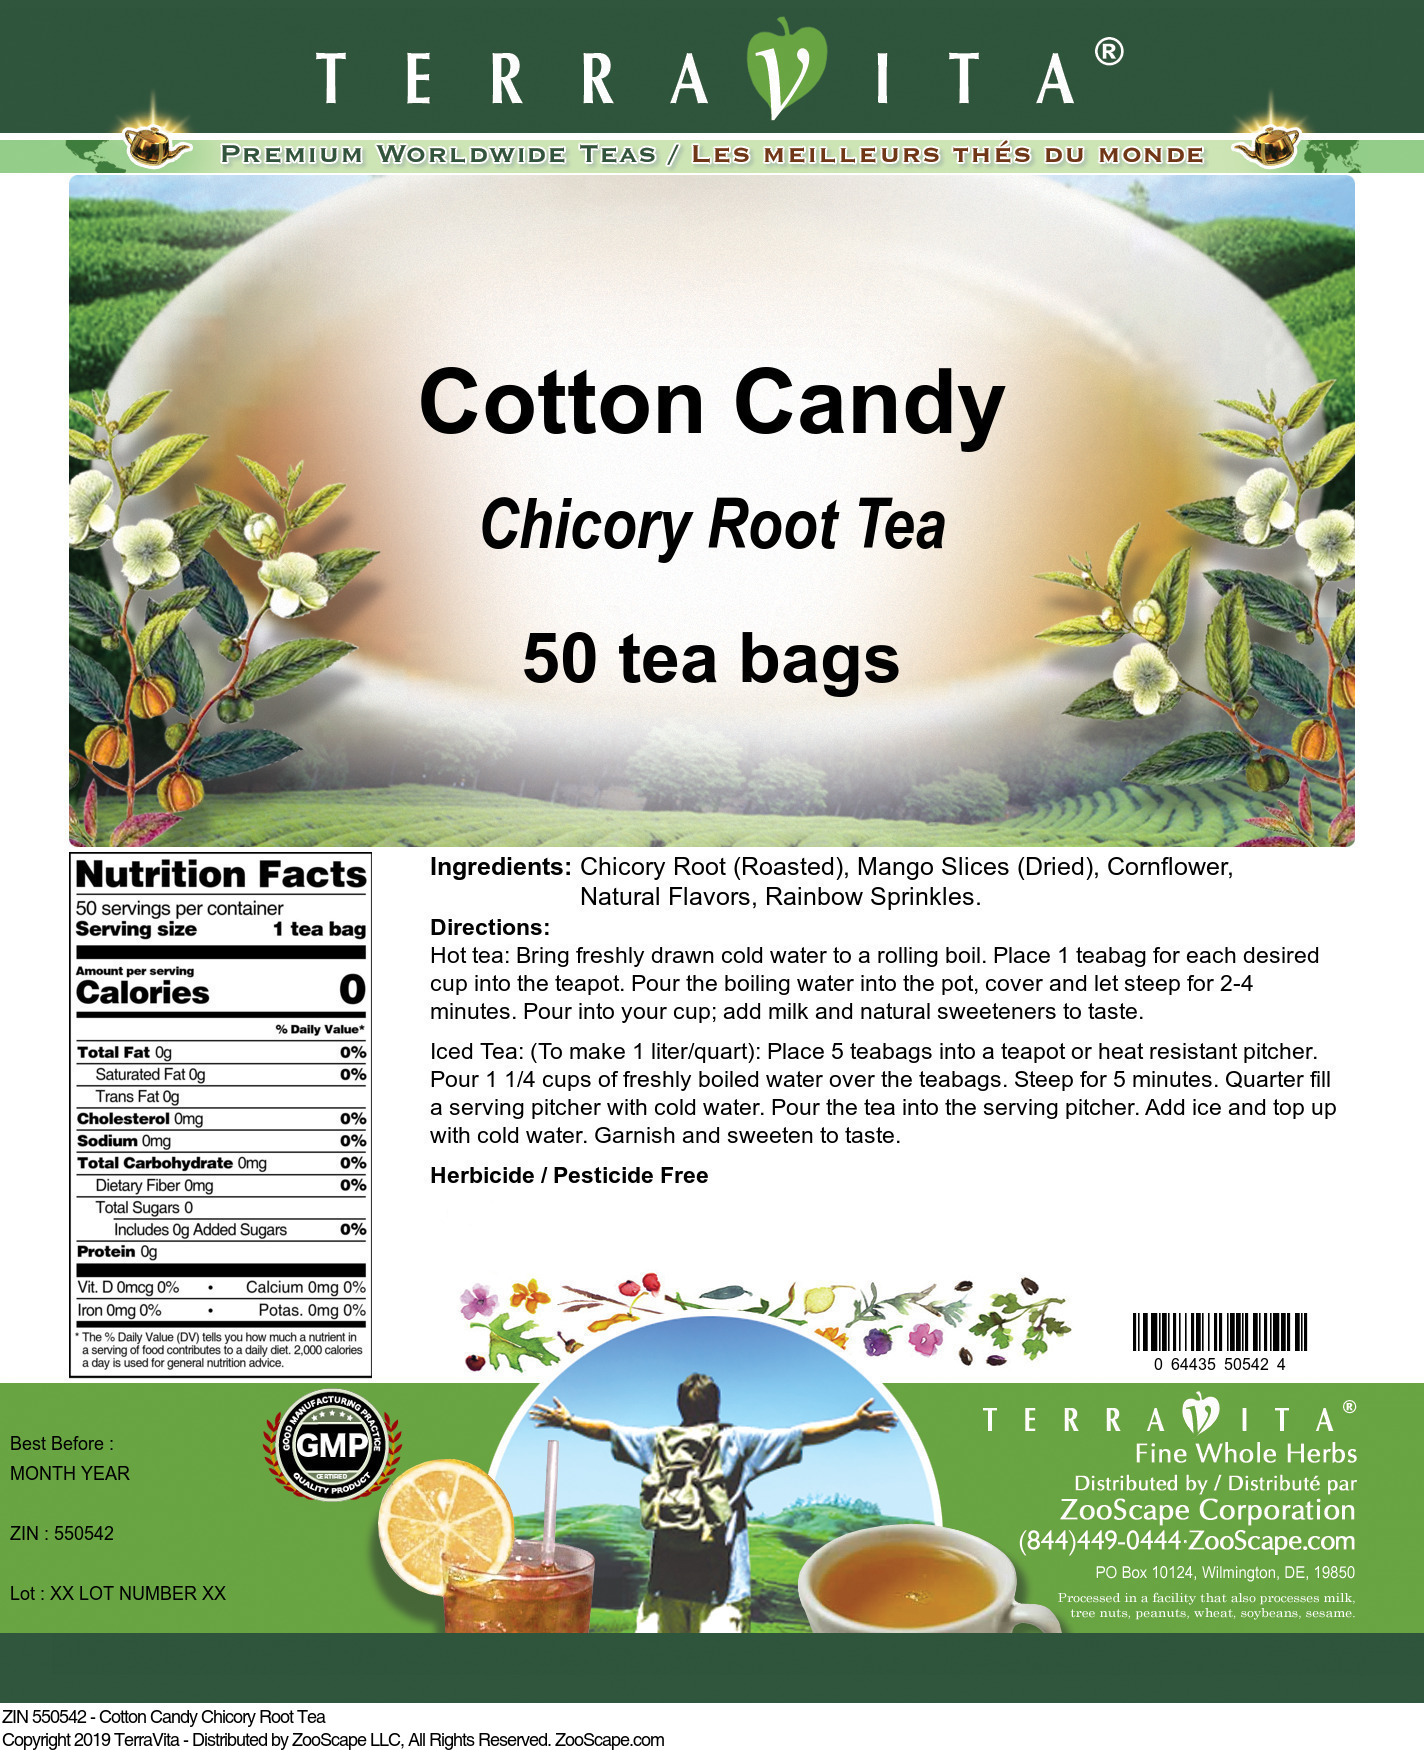 Cotton Candy Chicory Root Tea